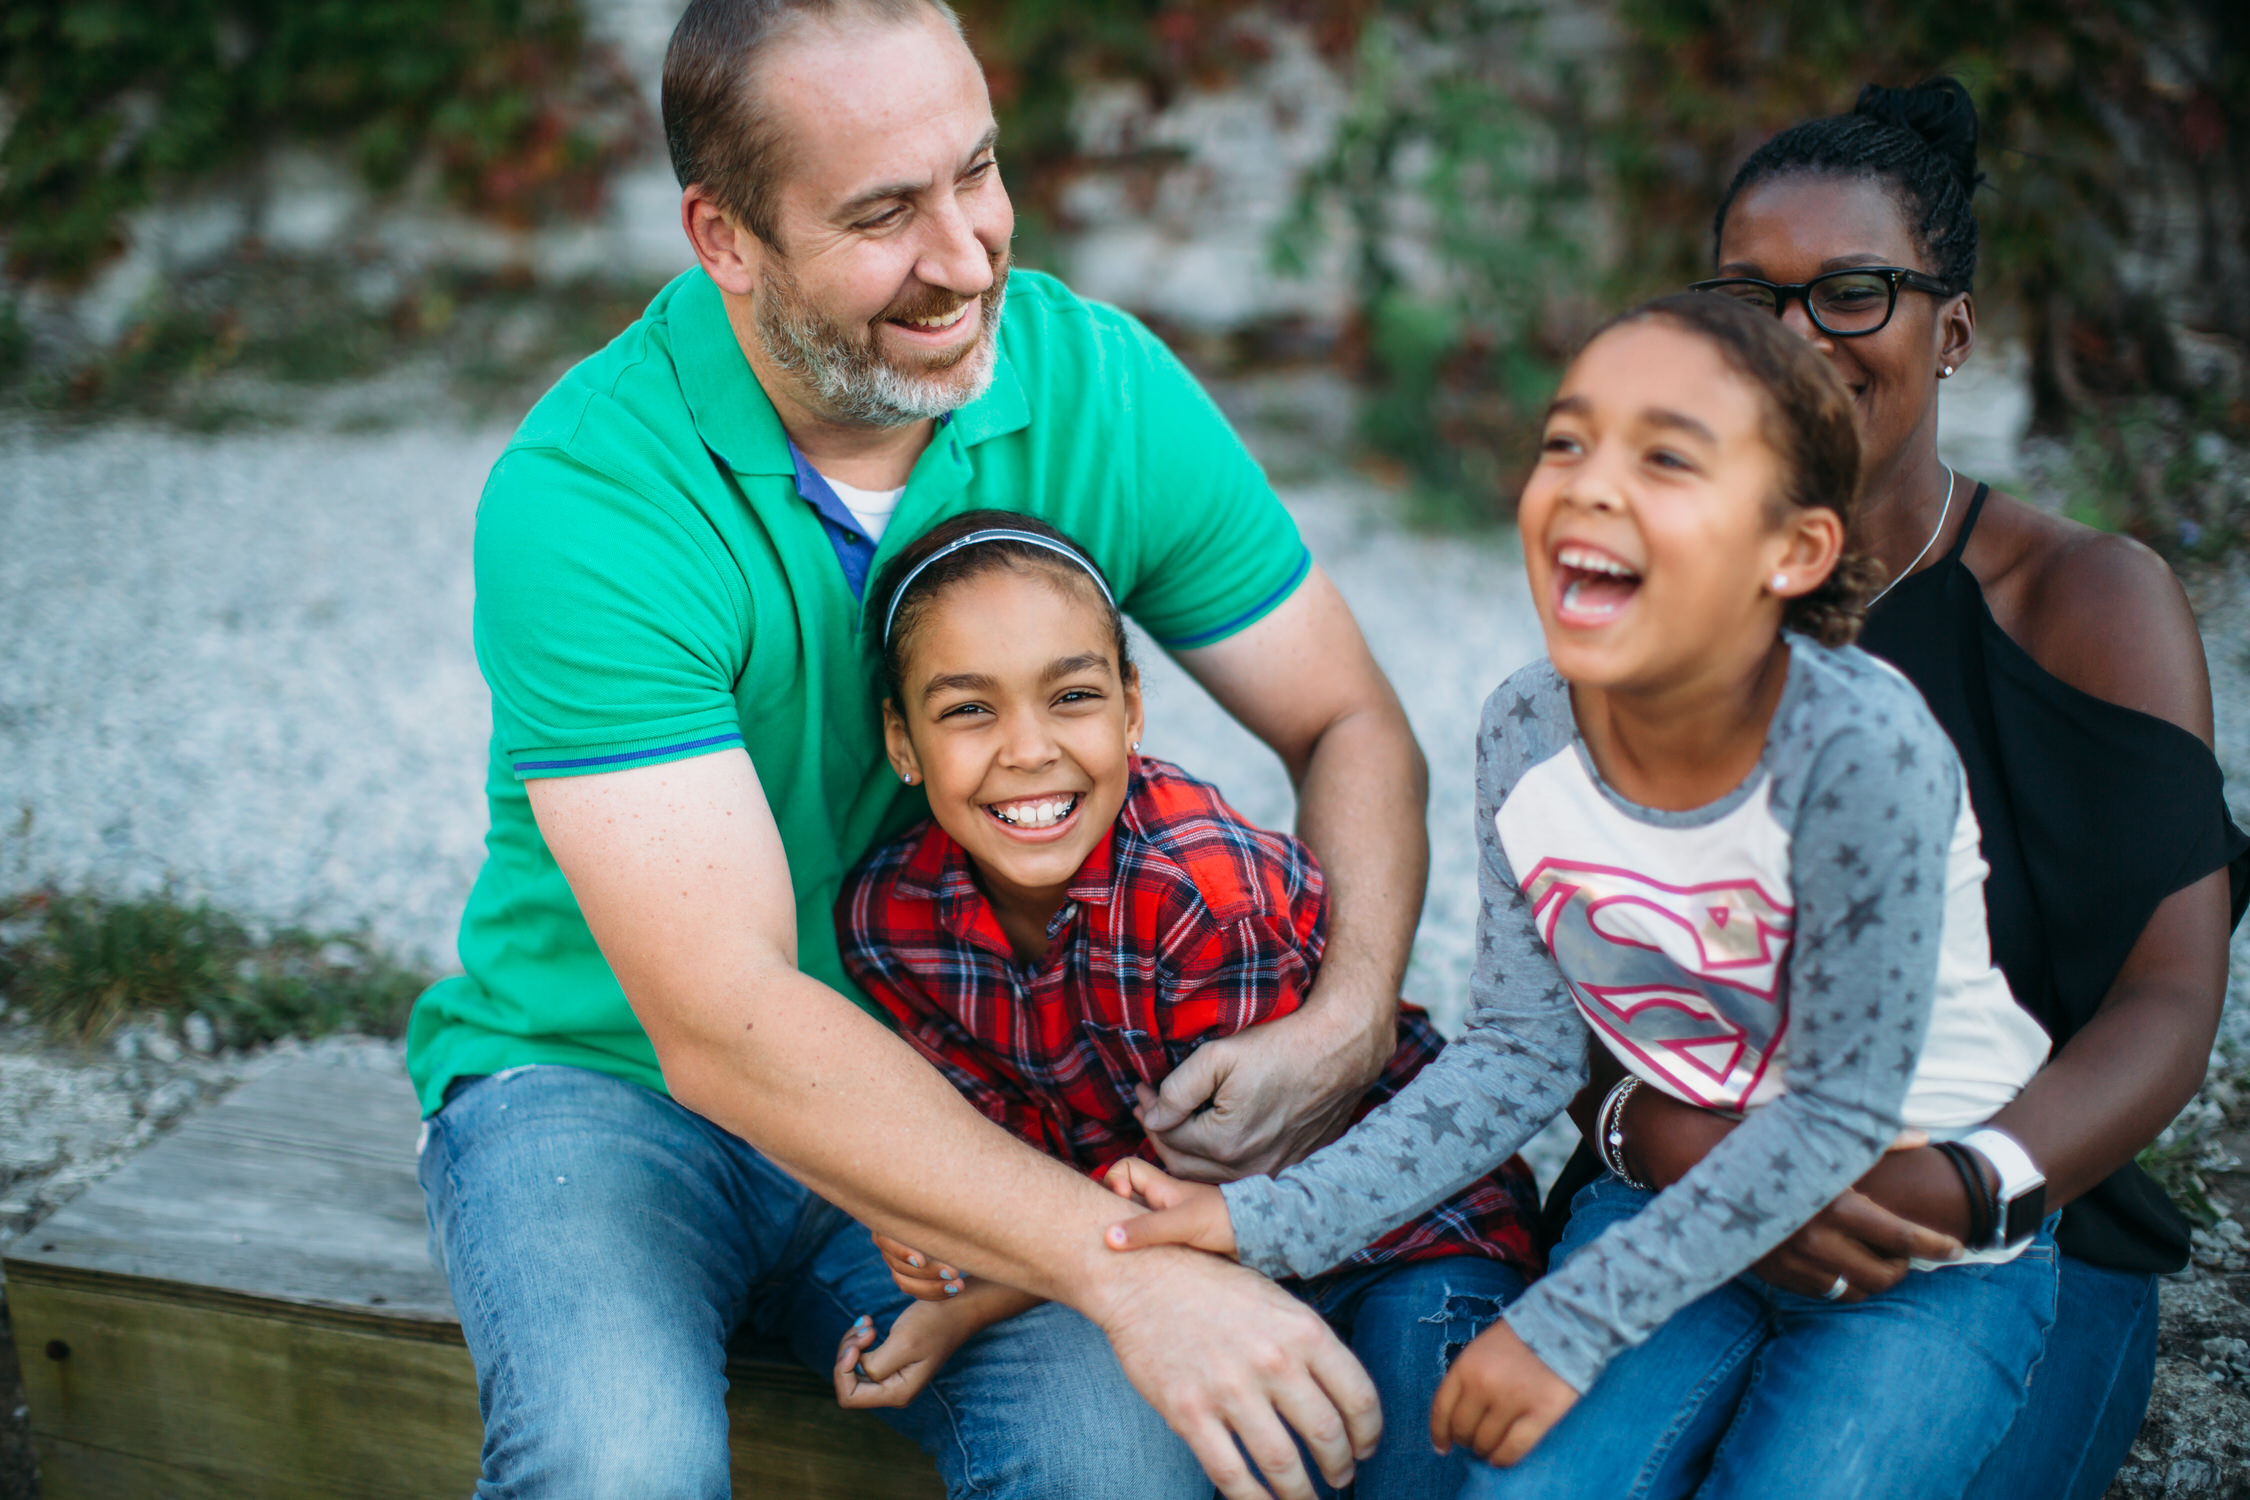 Interracial family, blended family, St louis family photographer